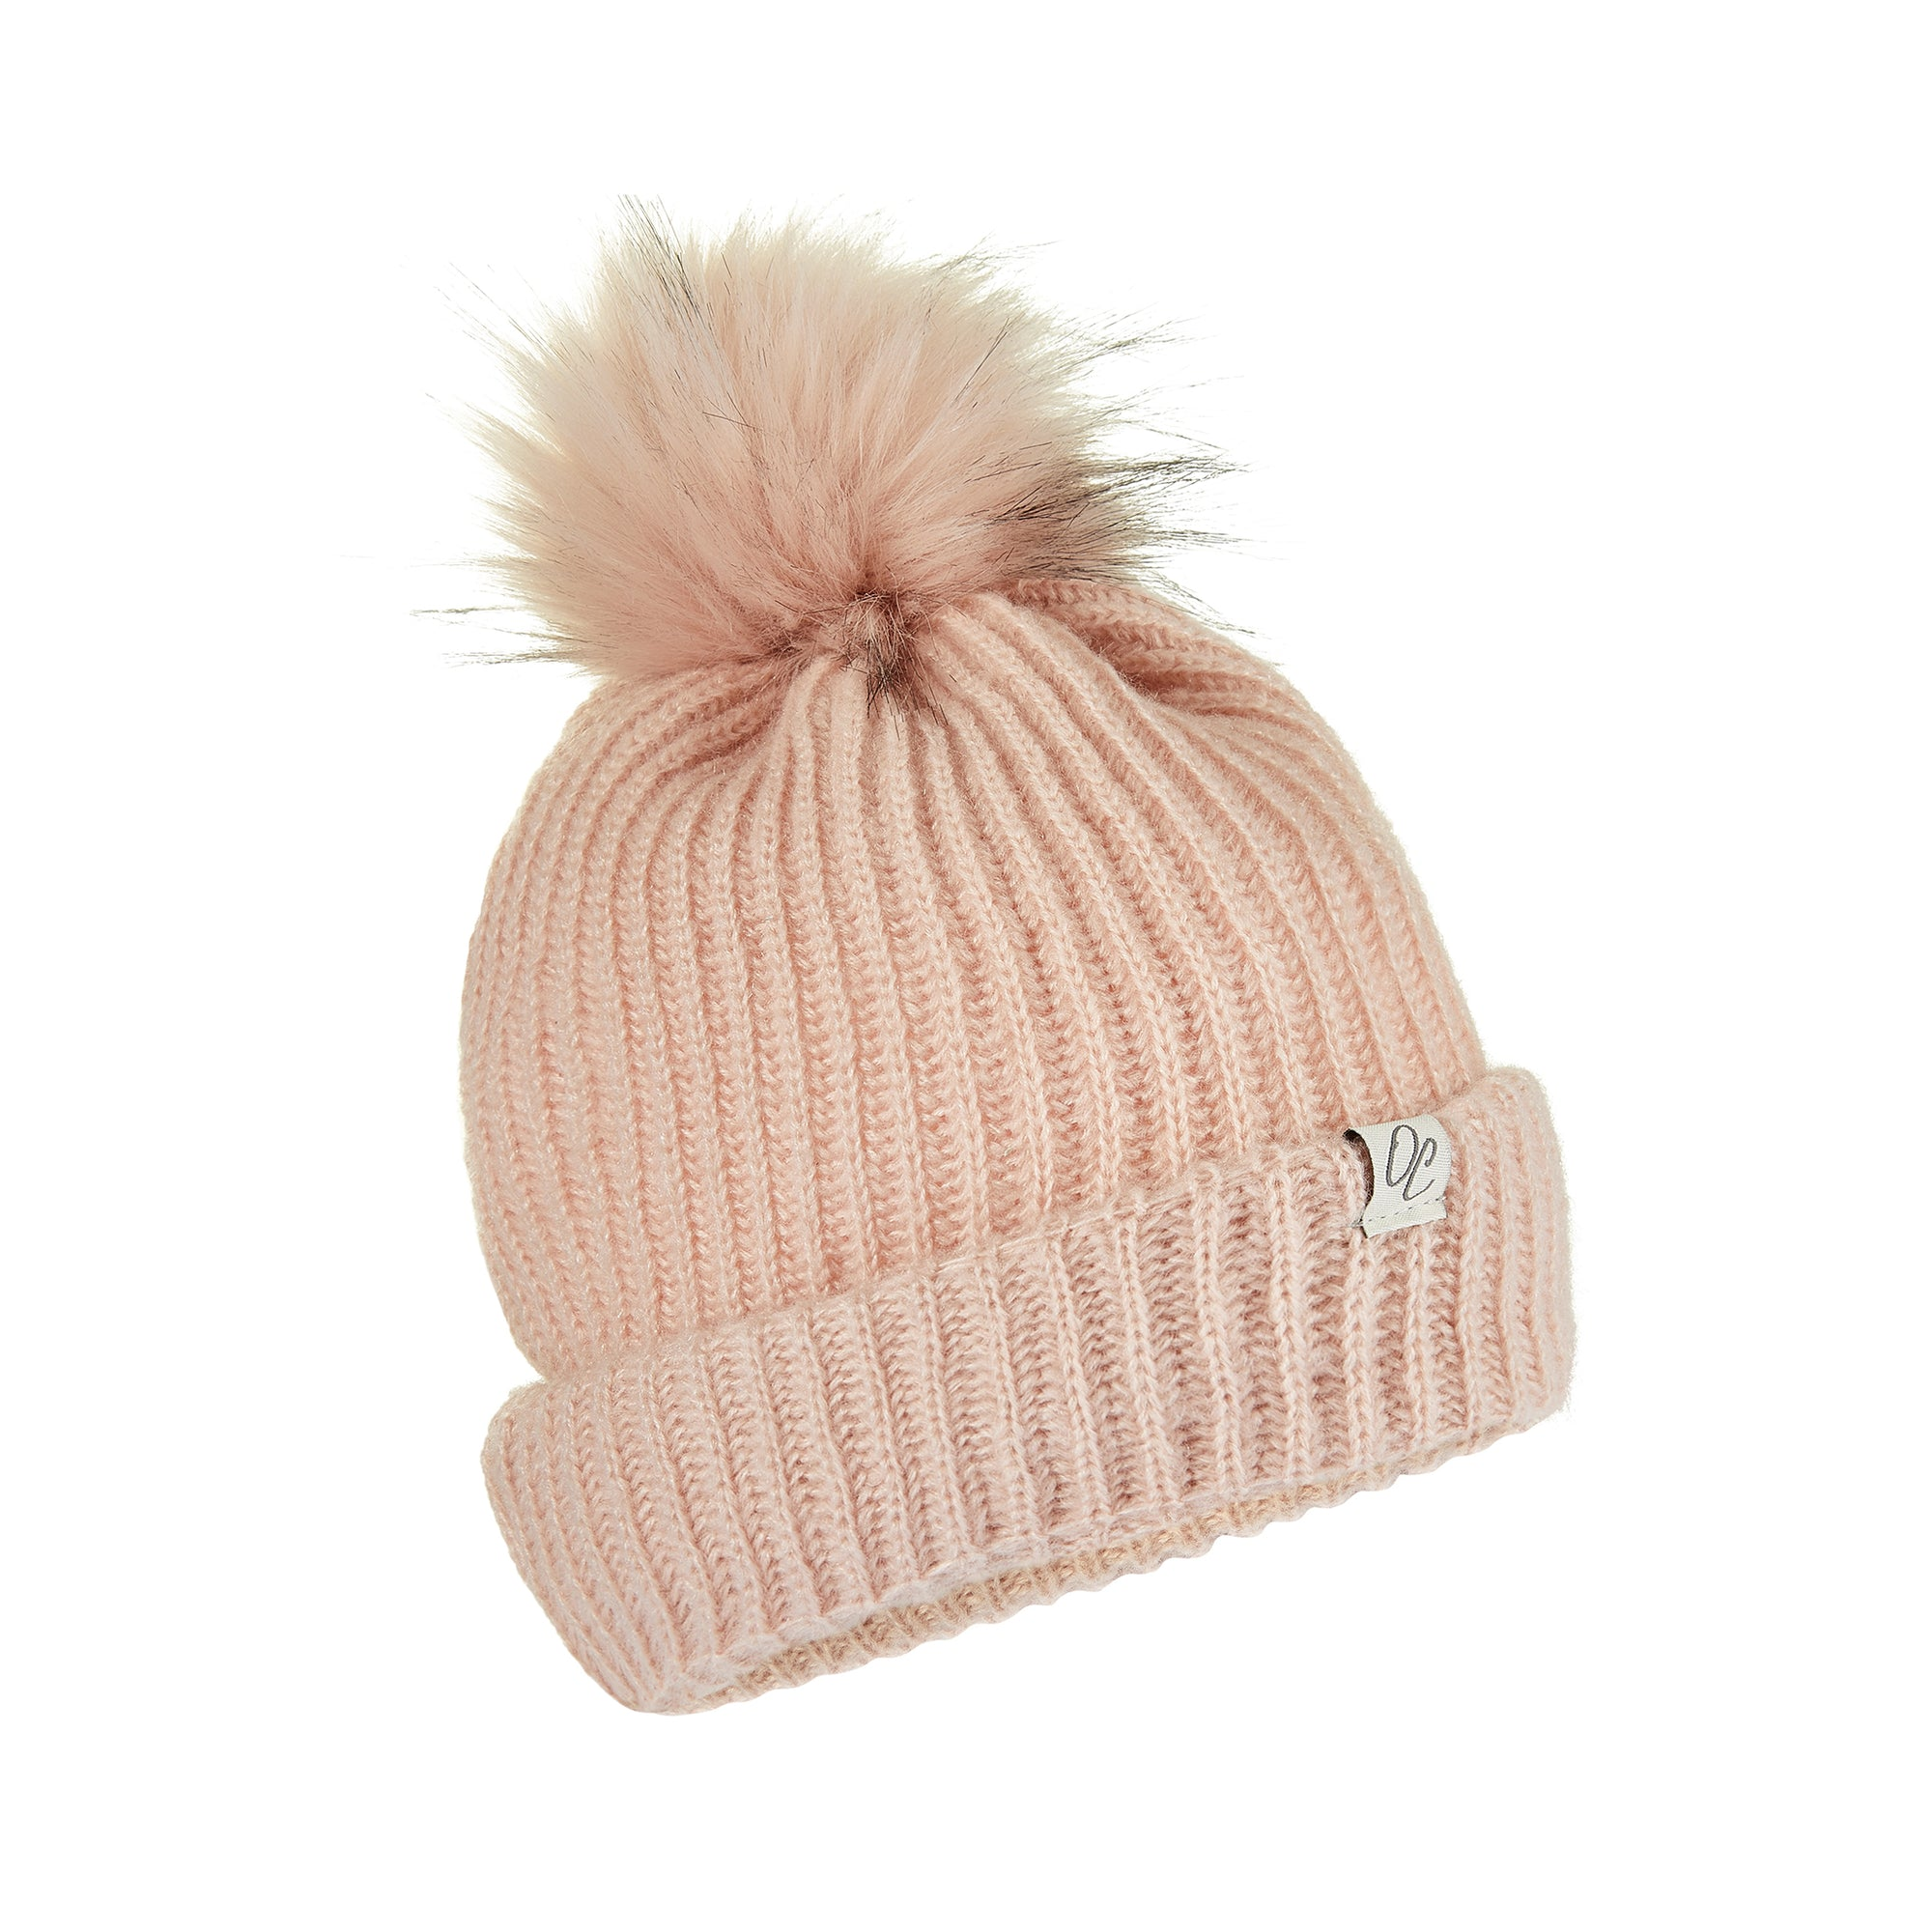 Only Curls Pink Satin Lined Knitted Beanie Hat with pom pom and showing the lining